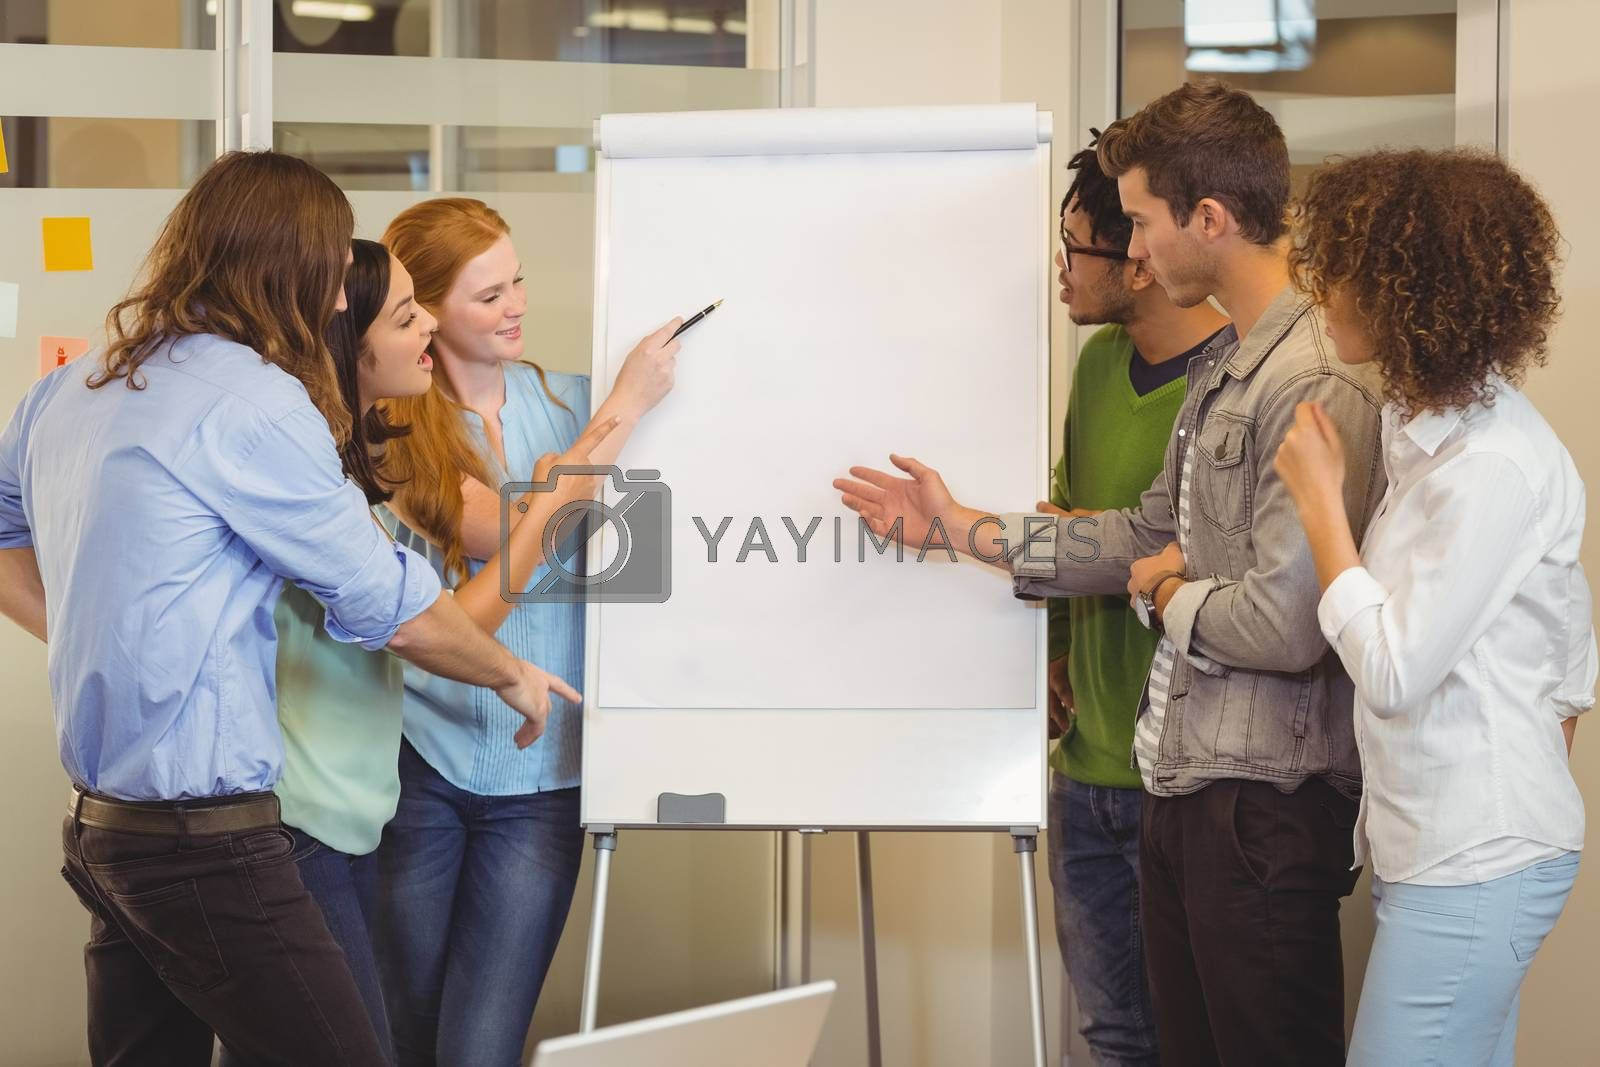 Business people looking at whiteboard during meeting in office